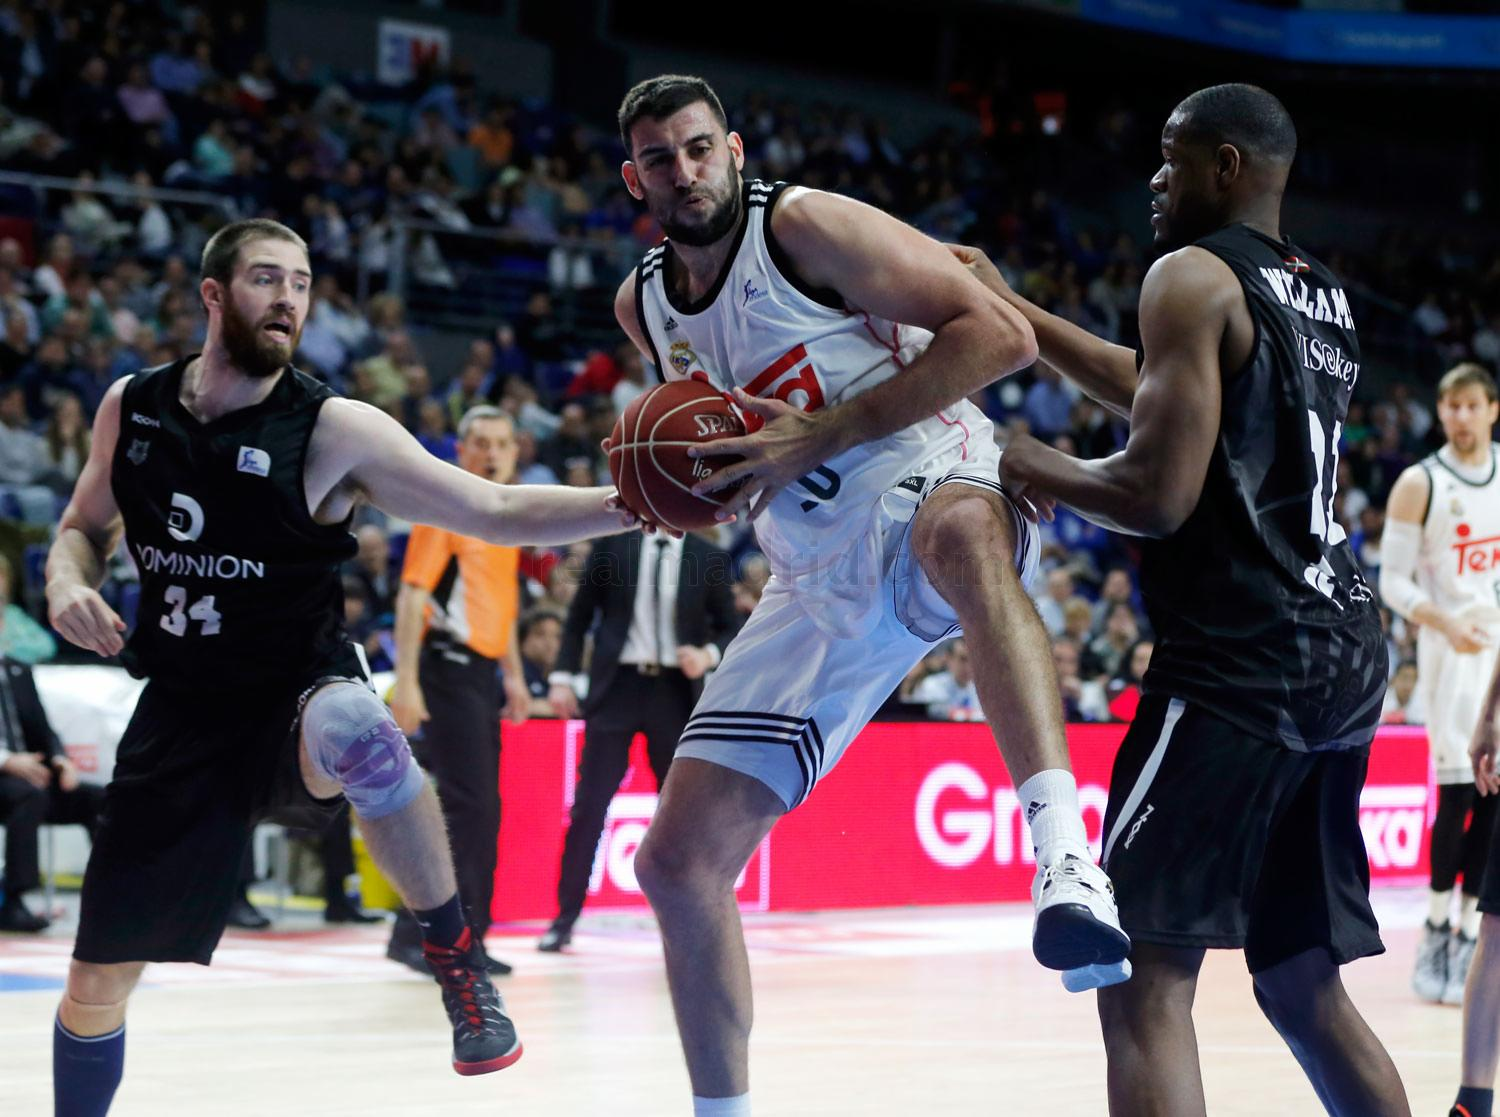 Real Madrid - Real Madrid - Dominion Bilbao Basket - 26-04-2015